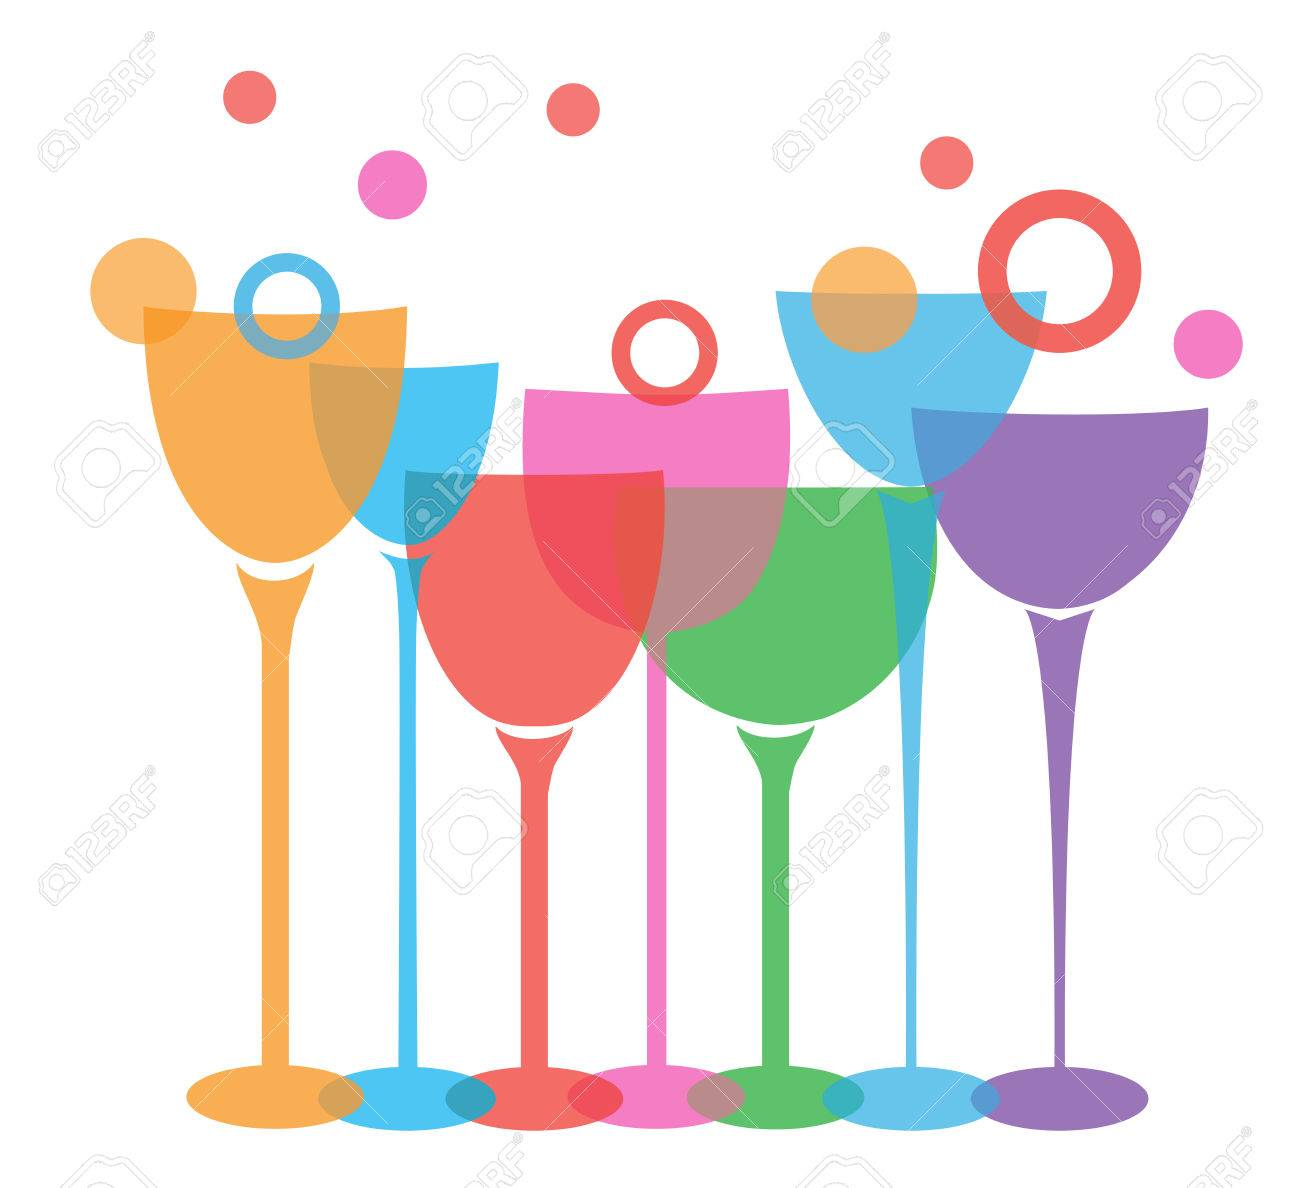 vector illustration of wine glasses isolated on white background - 56735399